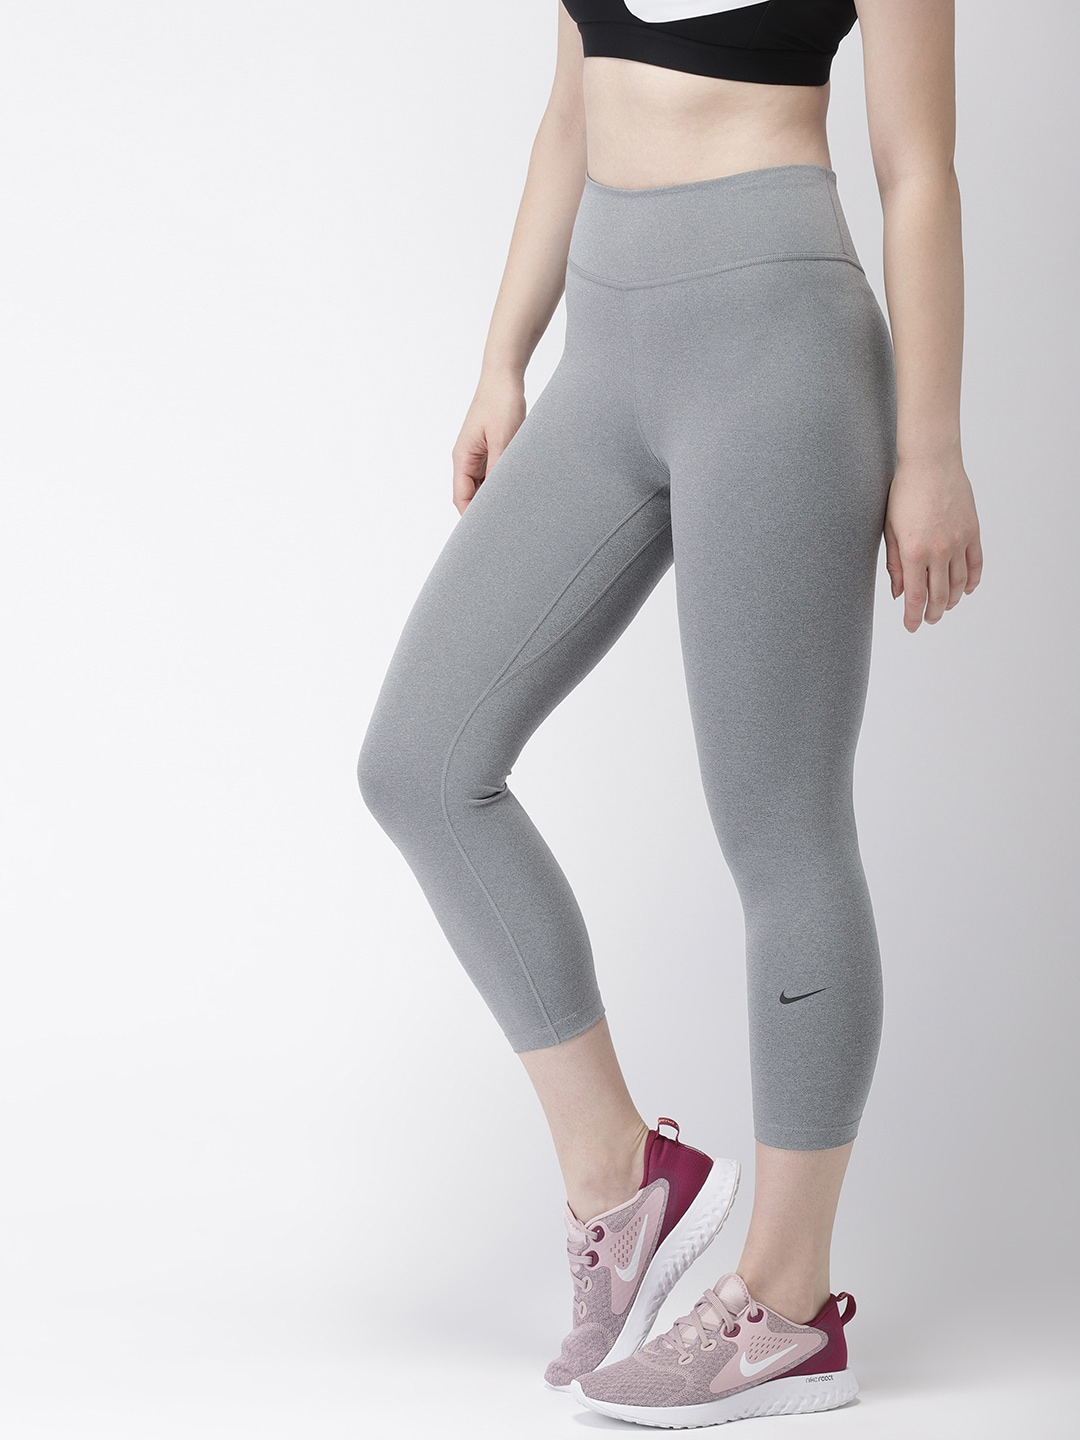 c5d4aa75a3afb4 Nike Basketball Tights Capris - Buy Nike Basketball Tights Capris online in  India